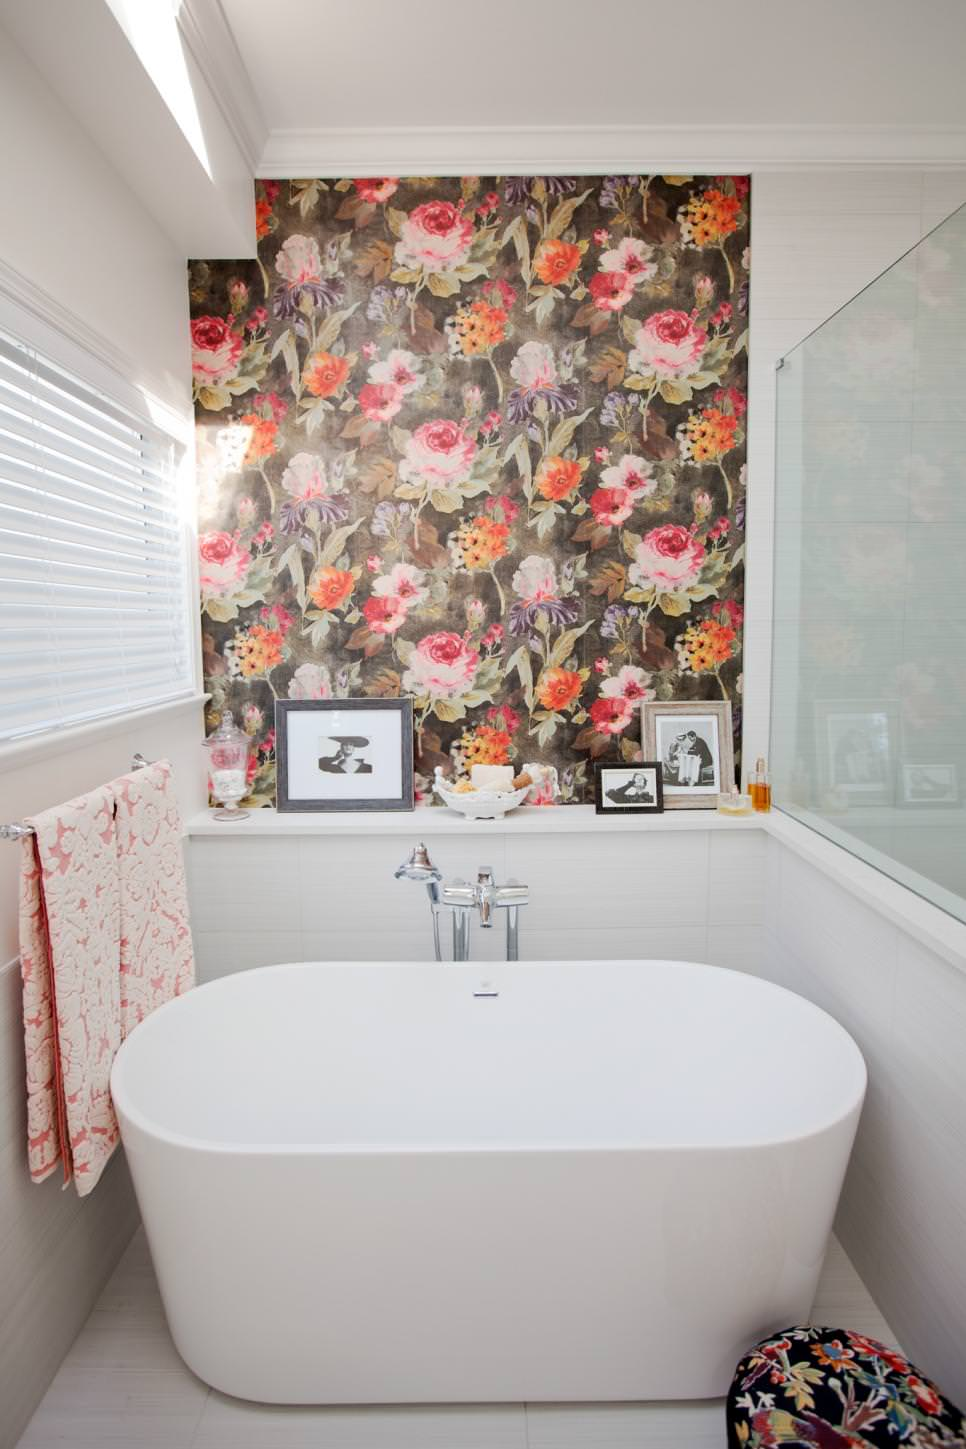 22 floral bathroom designs decorating ideas design for Bathroom decorating ideas wallpaper